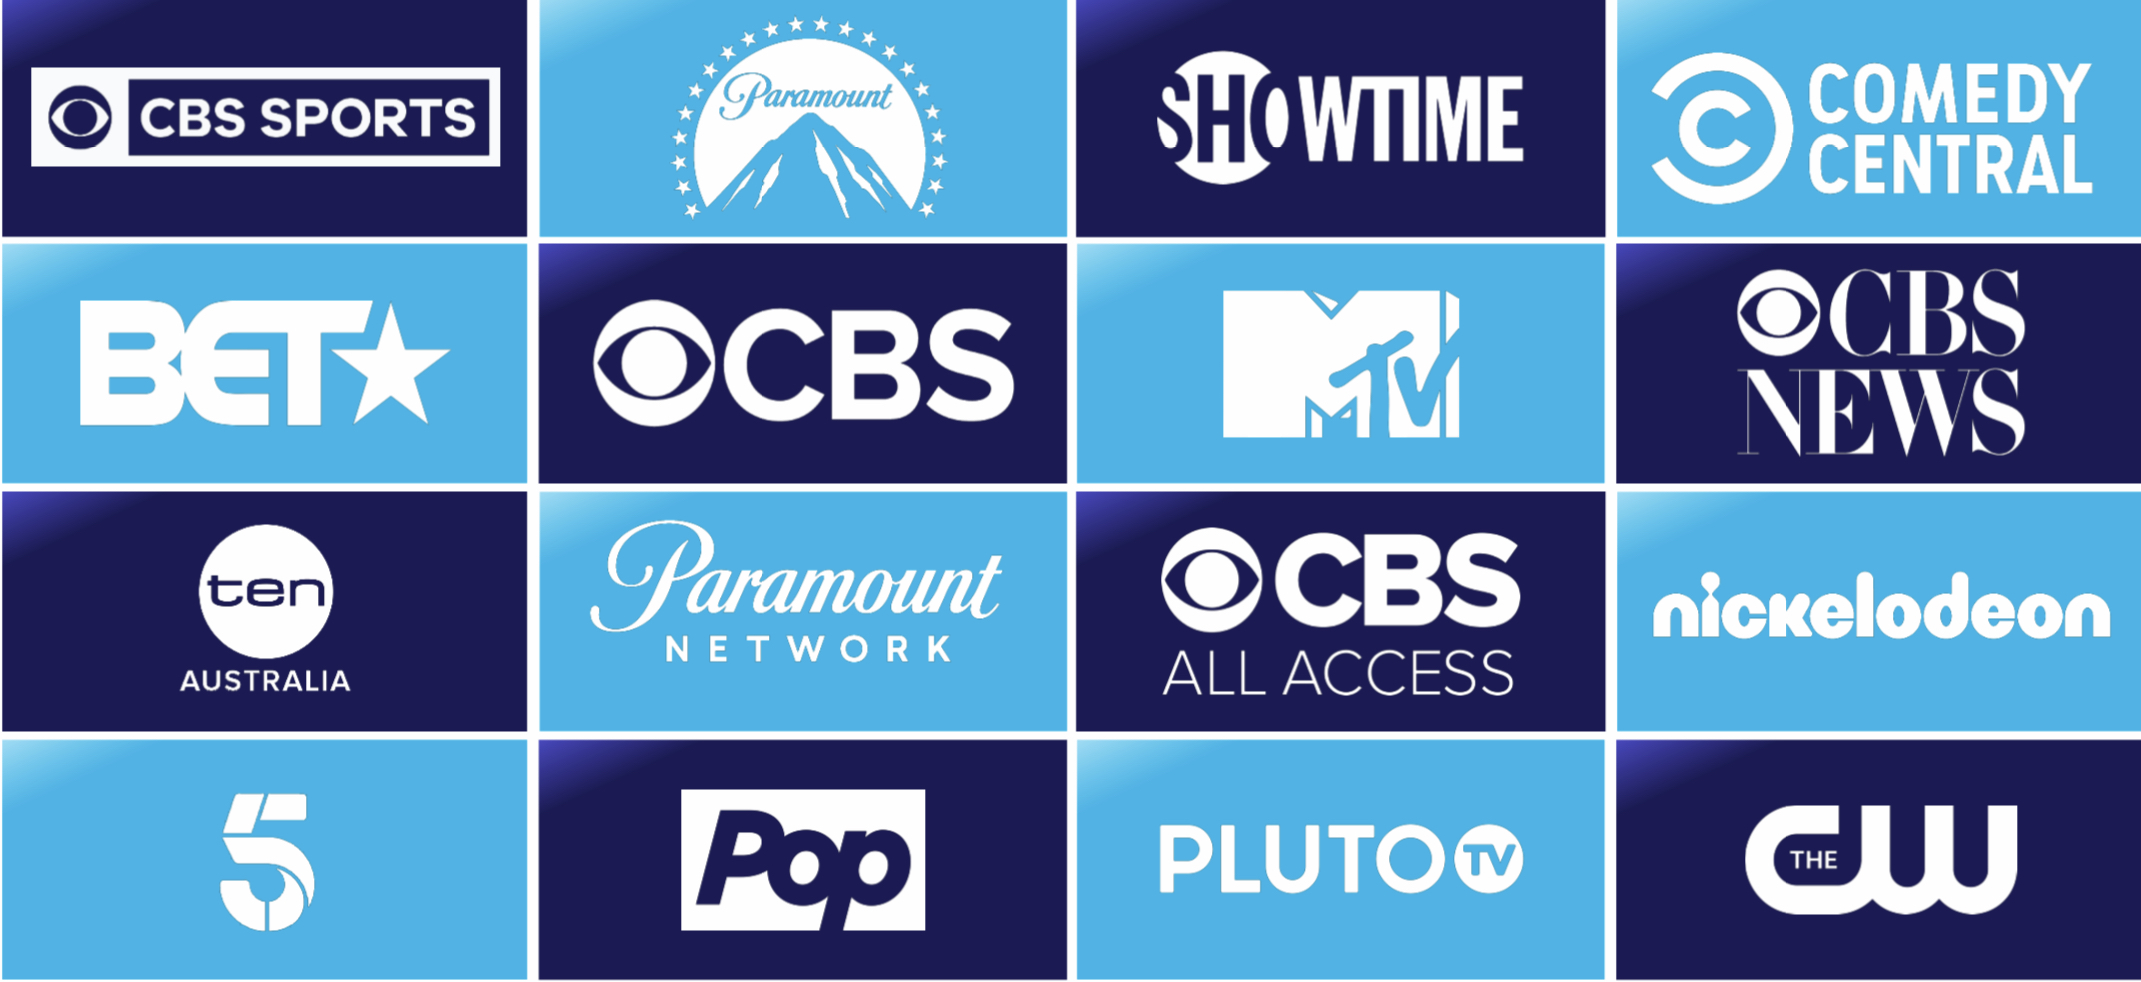 Viacom and CBS reunite - but can they win big in the streaming wars?